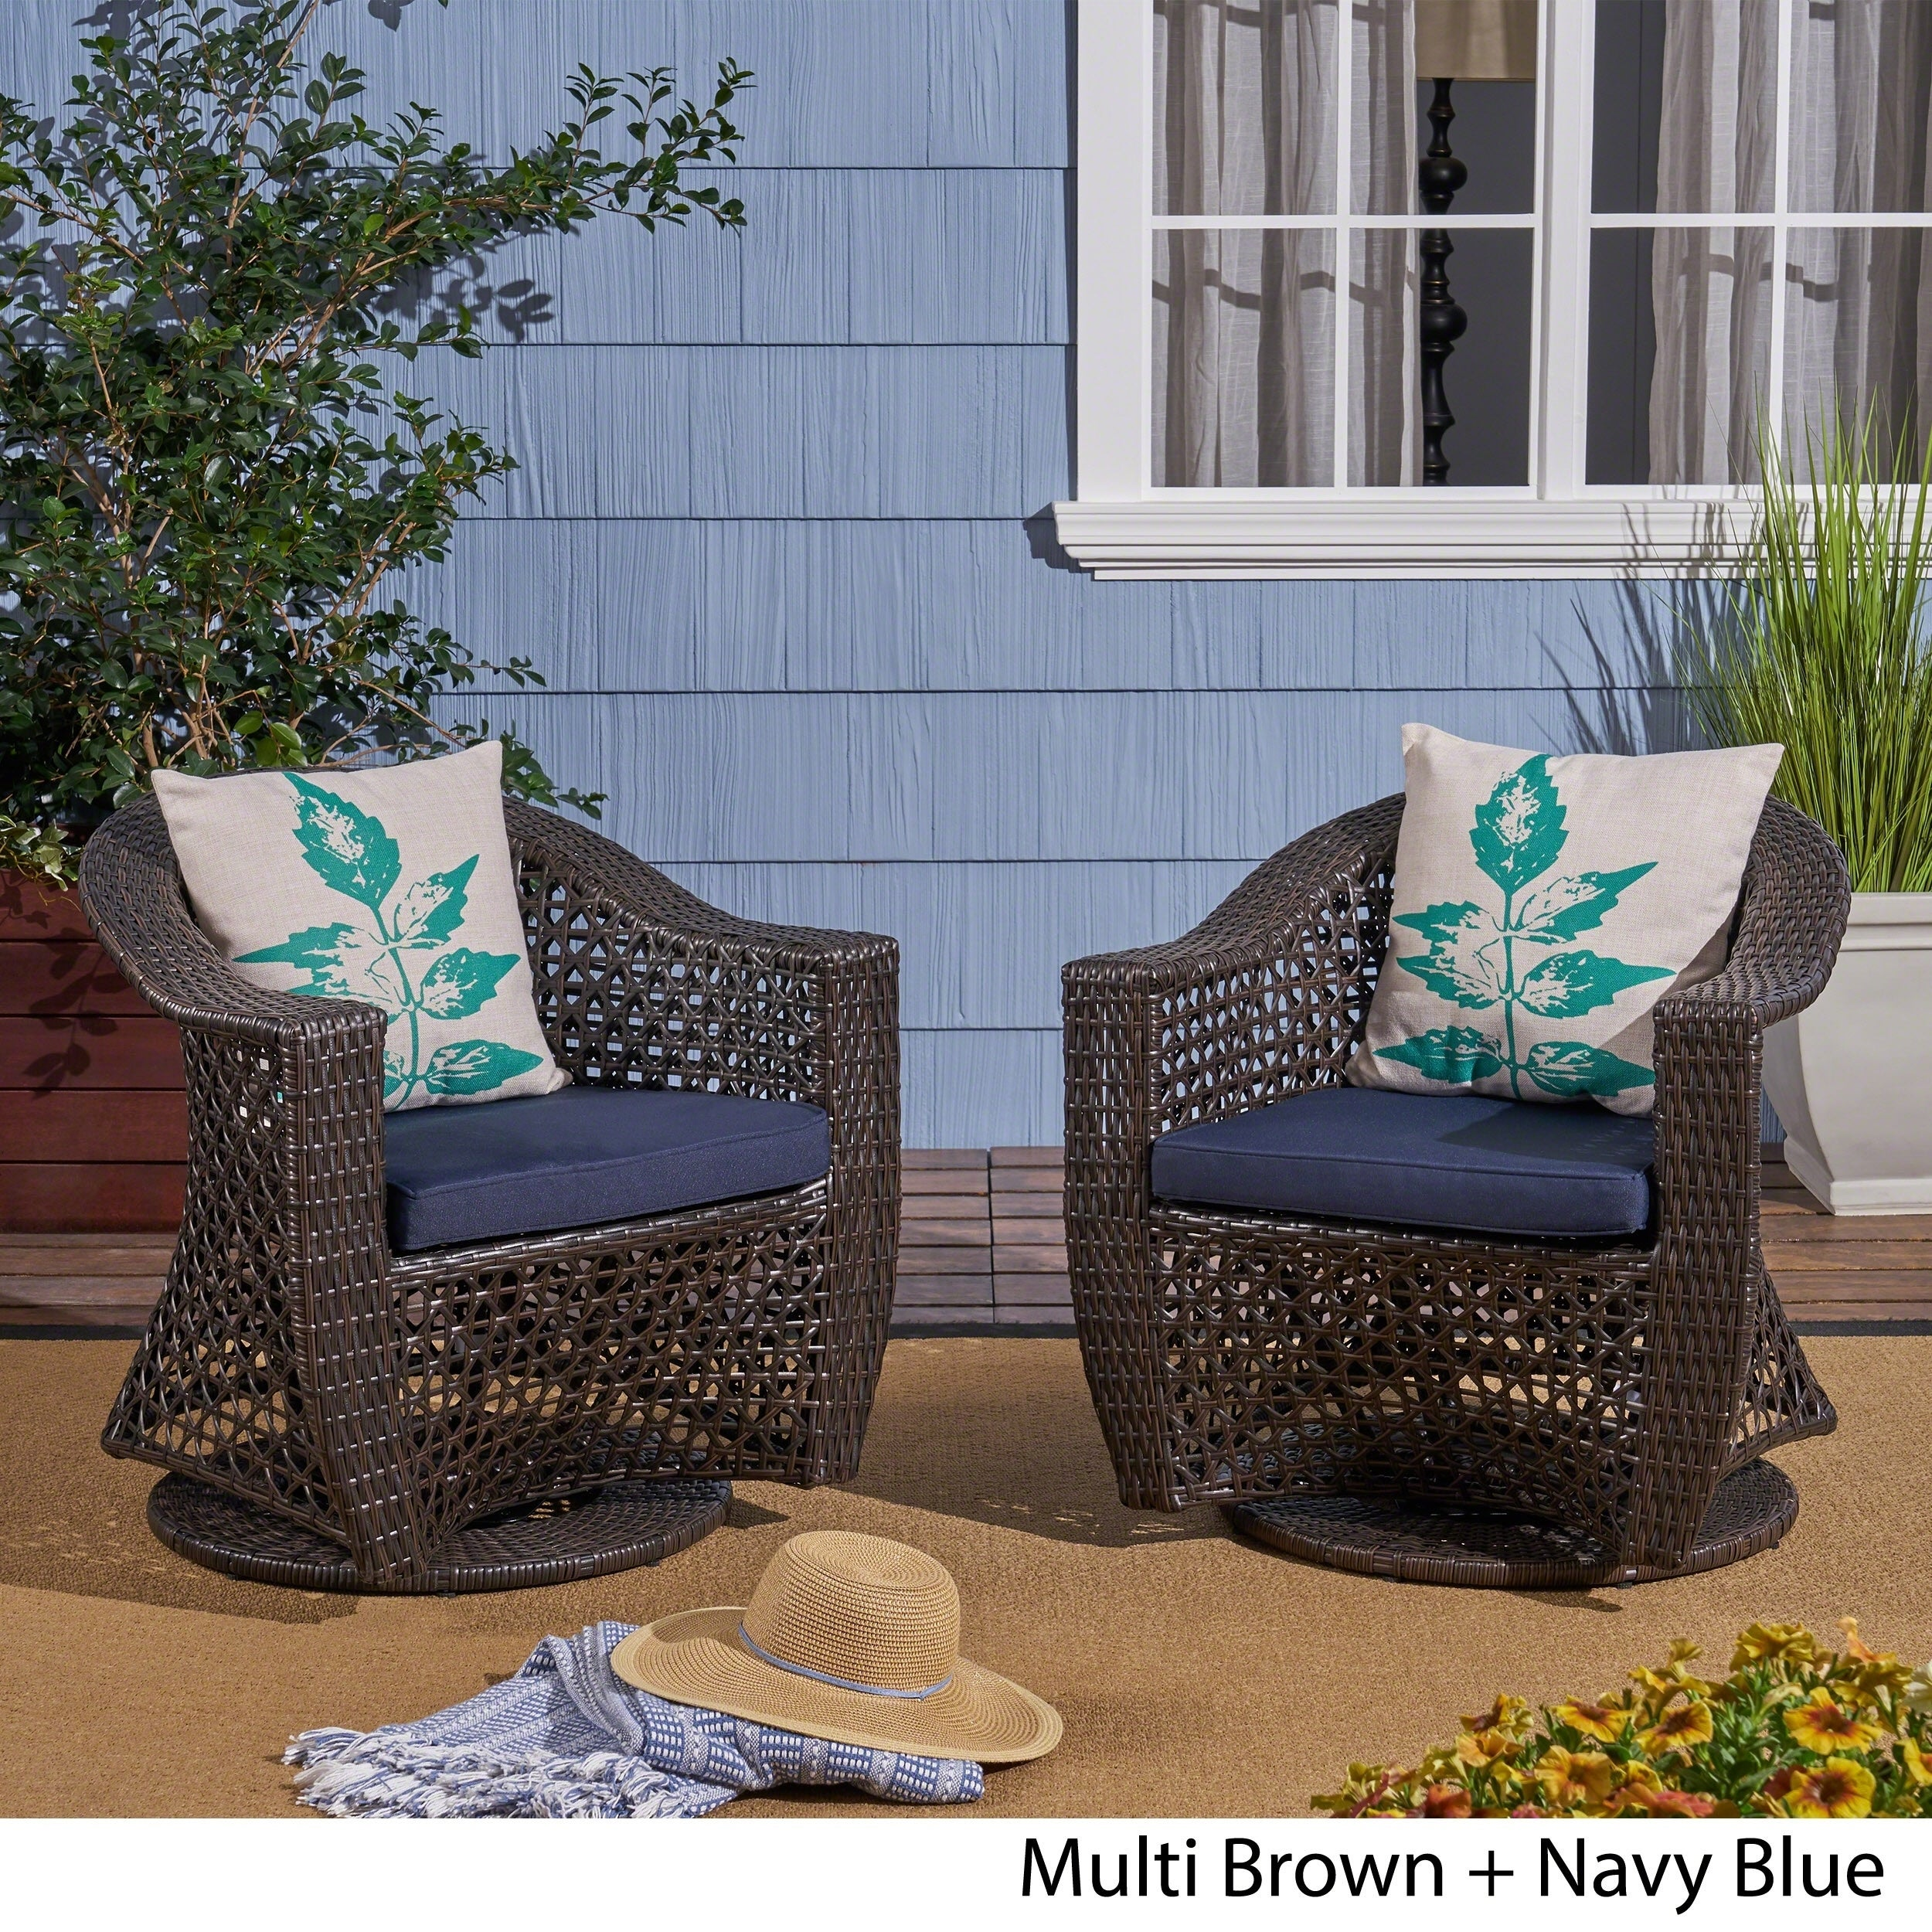 Terrific Big Sur Outdoor Wicker Swivel Chair With Cushions Set Of 2 By Christopher Knight Home Evergreenethics Interior Chair Design Evergreenethicsorg